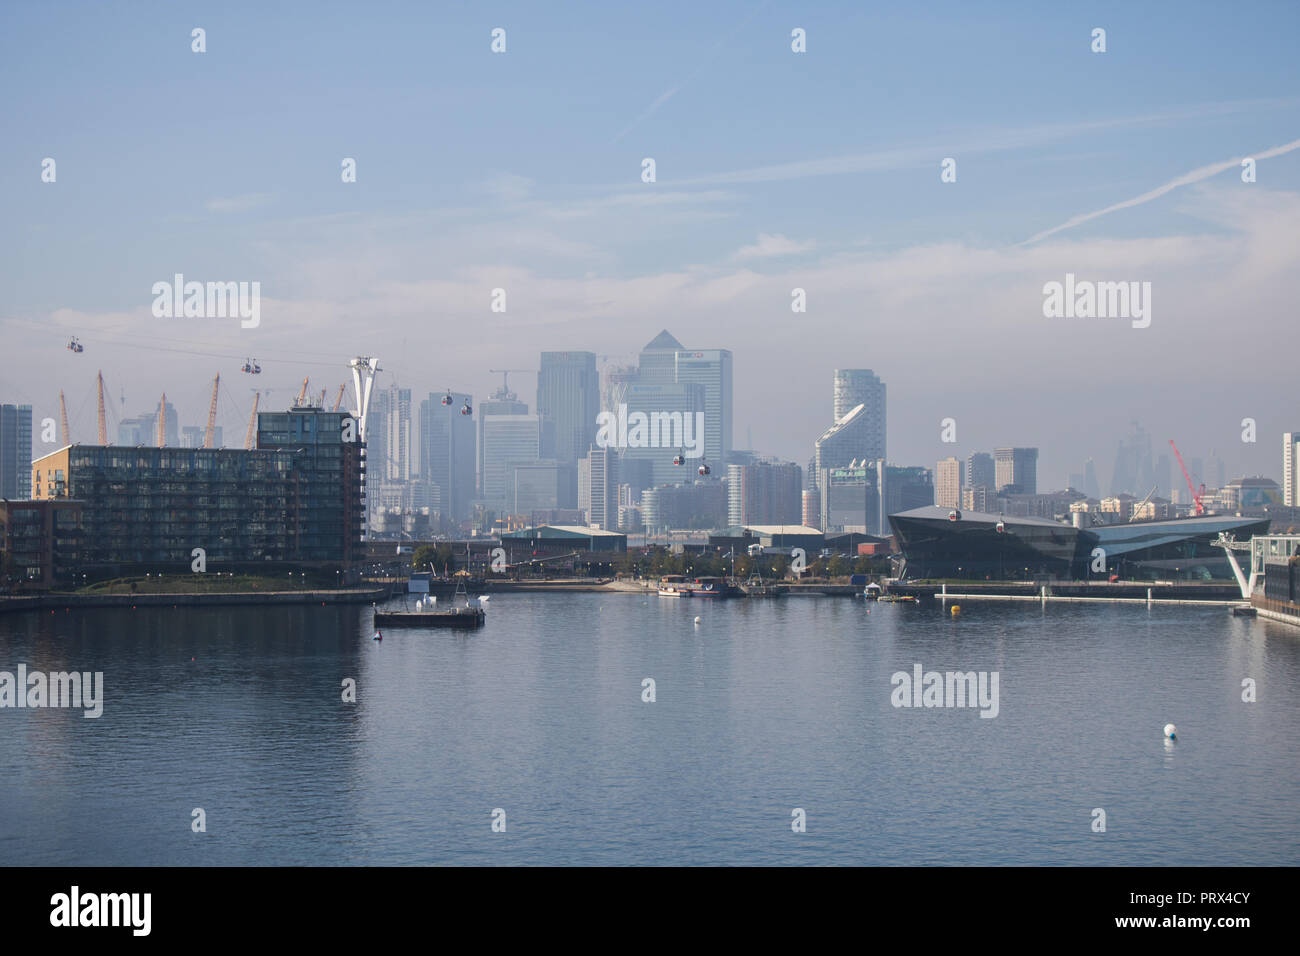 London UK. 5th October 2018. UK Weather: Canary Wharf skyline and gondolas seen from the Royal Victoria Docks bathed in autumn sunshine after the early moring fog clears Credit: amer ghazzal/Alamy Live News Credit: amer ghazzal/Alamy Live News - Stock Image